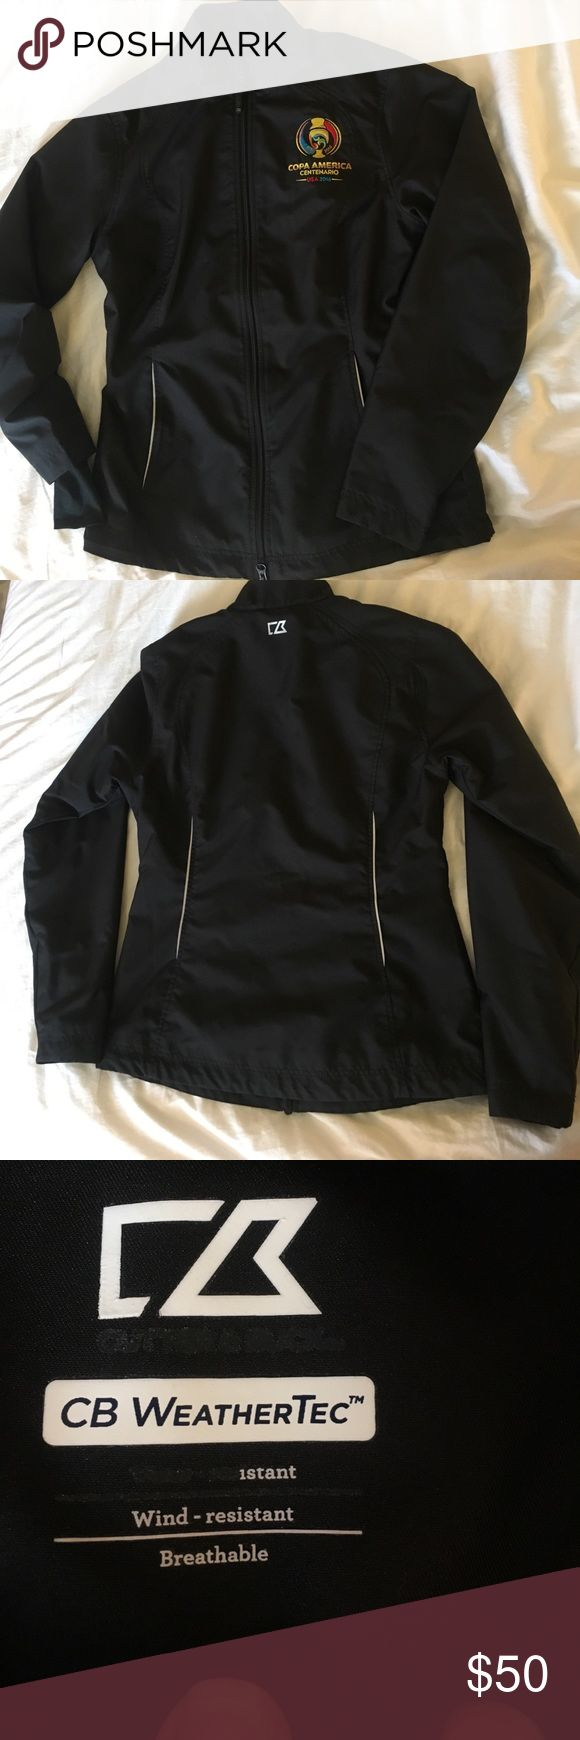 CB Tech Wind Resistant, black ladies jacket. CB Tech Wind Resistant, black ladies jacket. 2016 Copa America Centenario branded. Worn once. Looks brand new. CB Tech Jackets & Coats